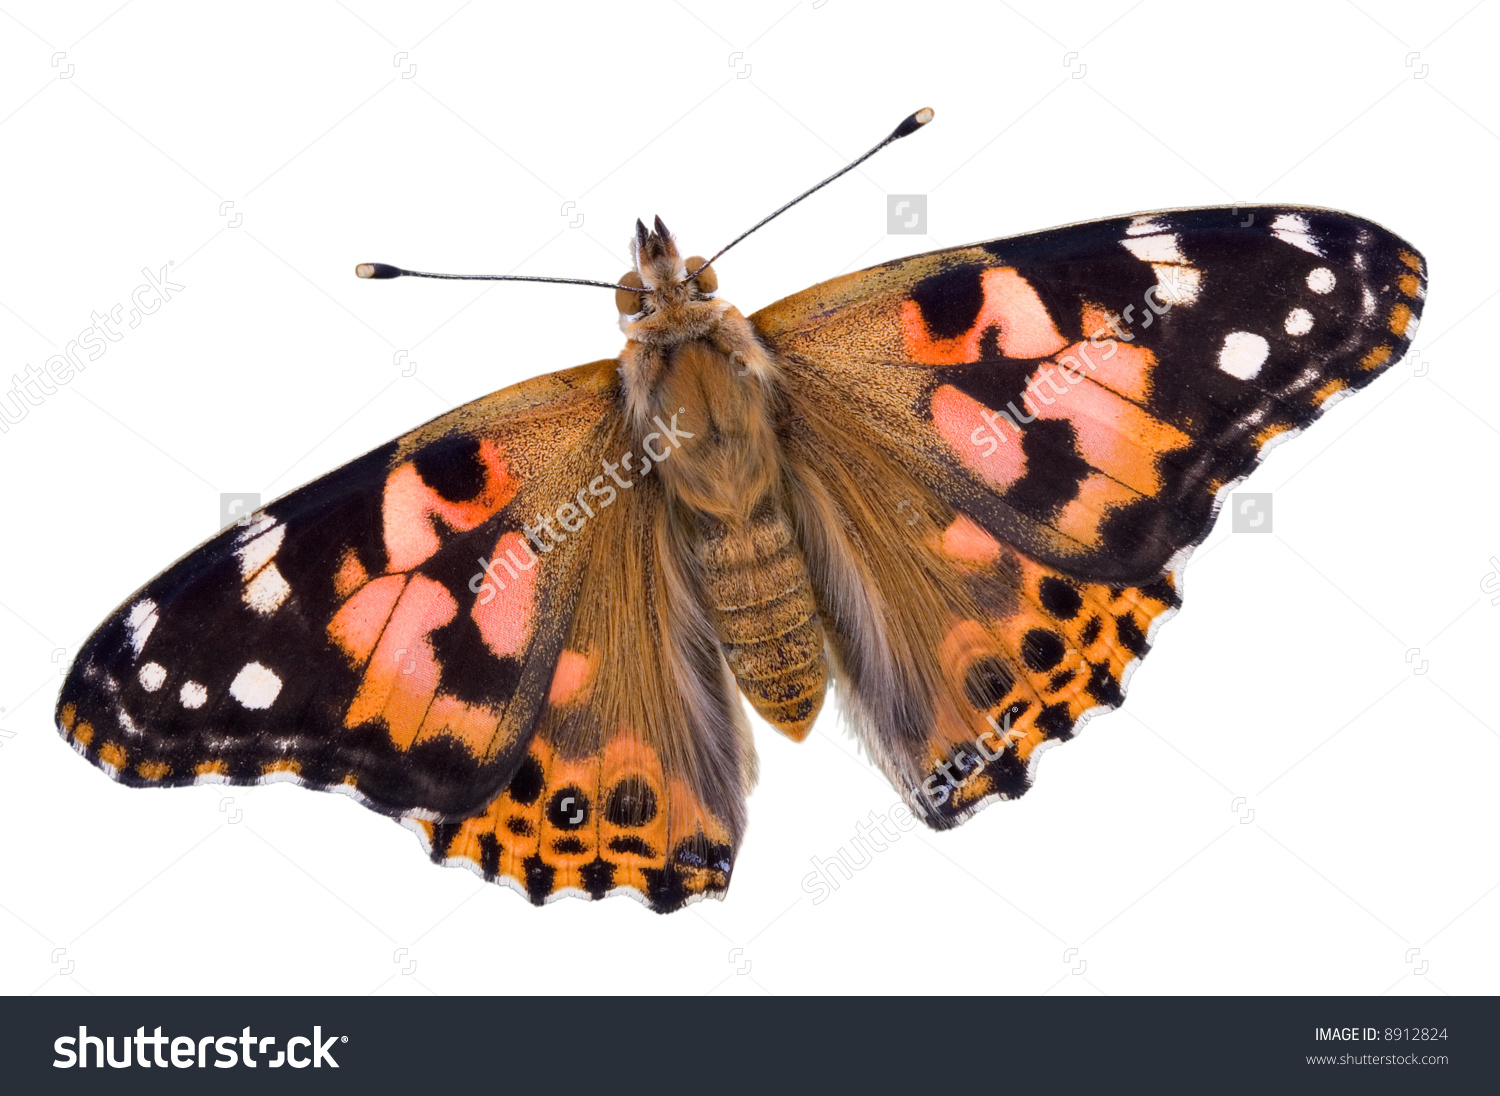 A Painted Lady Butterfly Has Its Wings Open On A White Background.